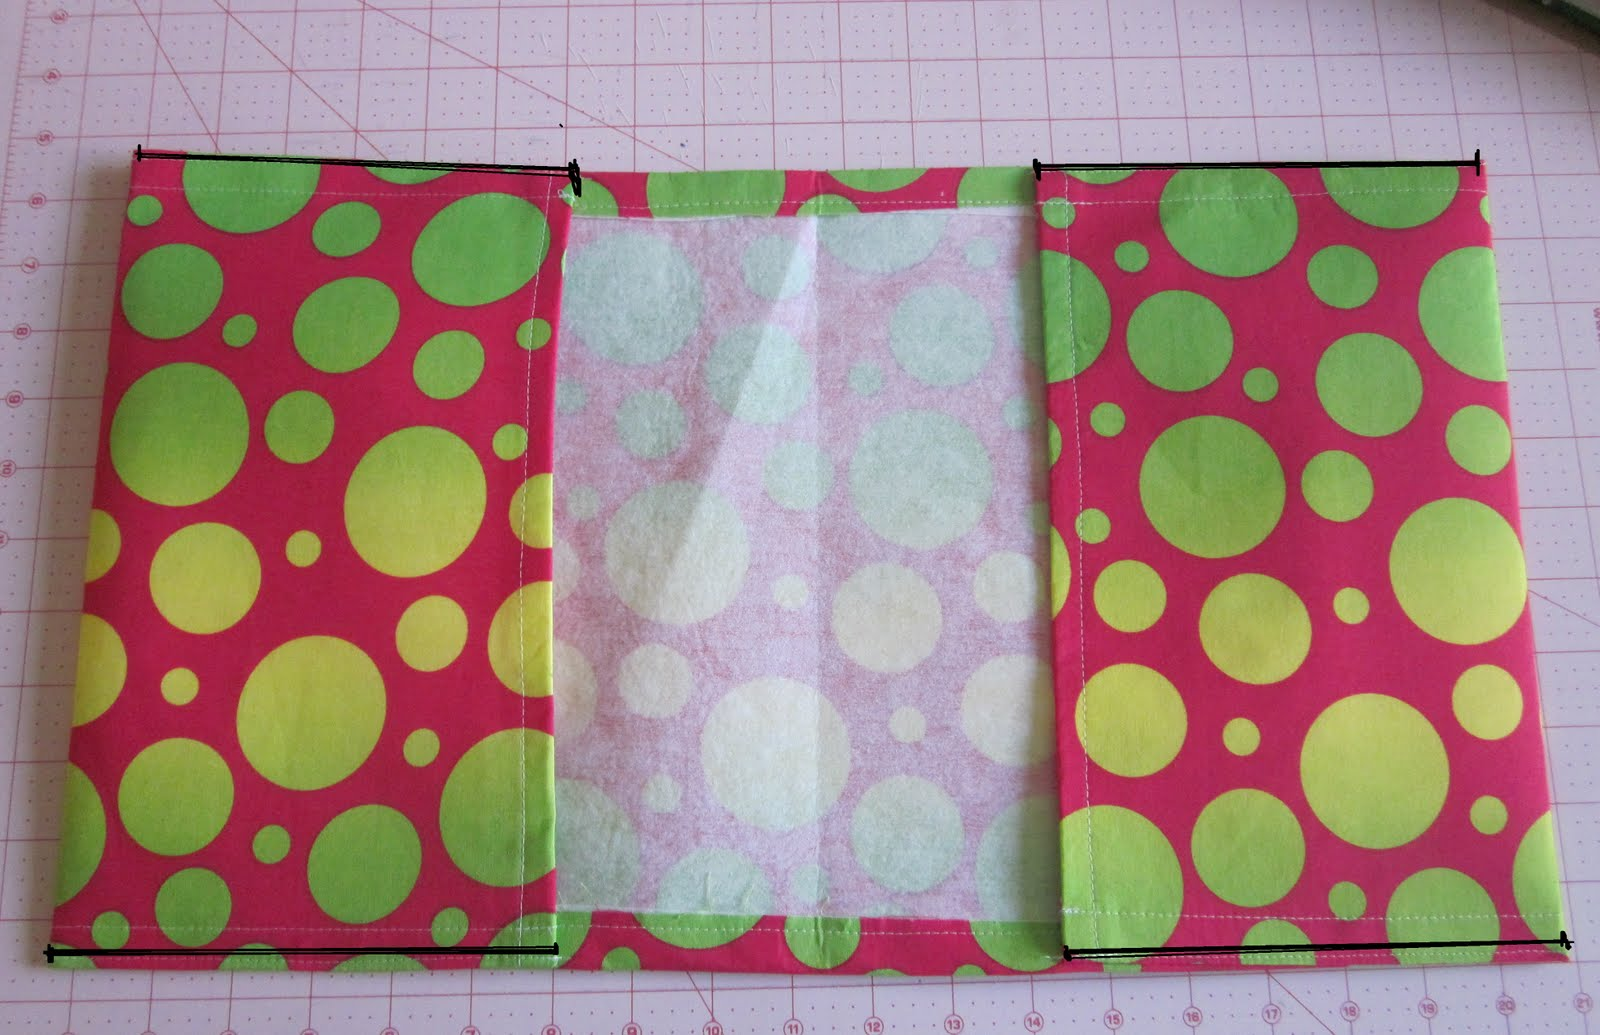 Handmade Book Cover Material ~ S o t a k handmade fabric text book cover tutorial